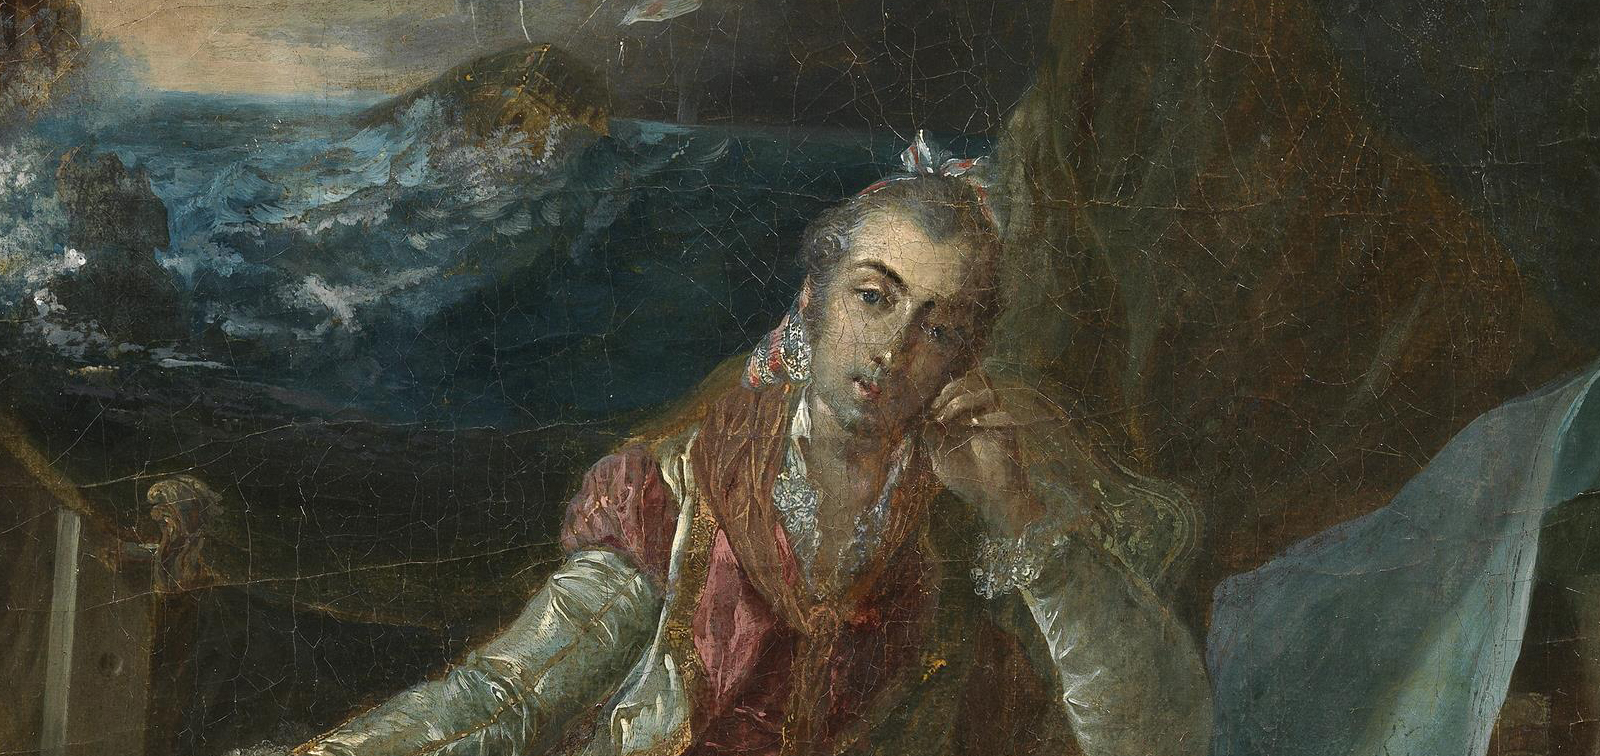 From El Greco to Goya: Masterpieces from the Museo del Prado